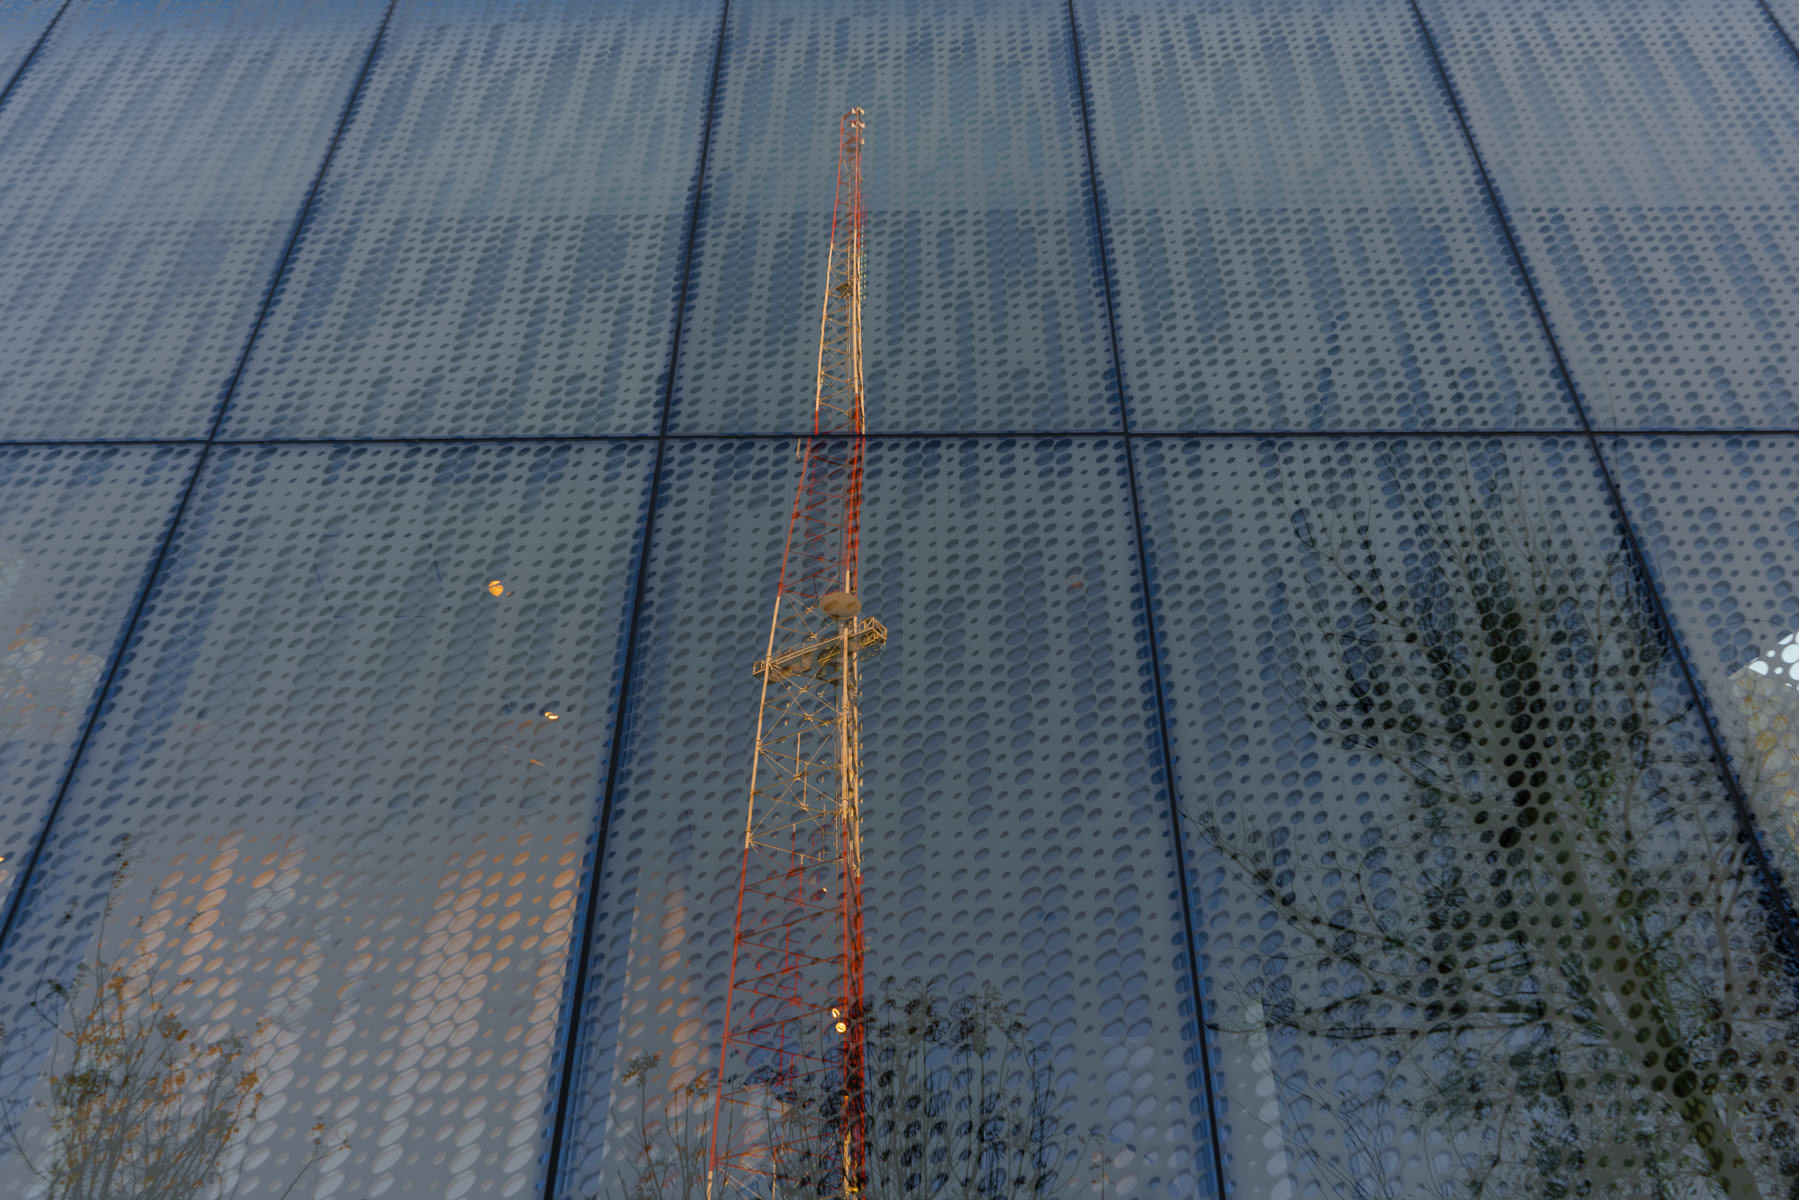 A nearby broadcast tower is reflected in the glass exterior of San Antonio's Tobin Center for the Performing Arts.